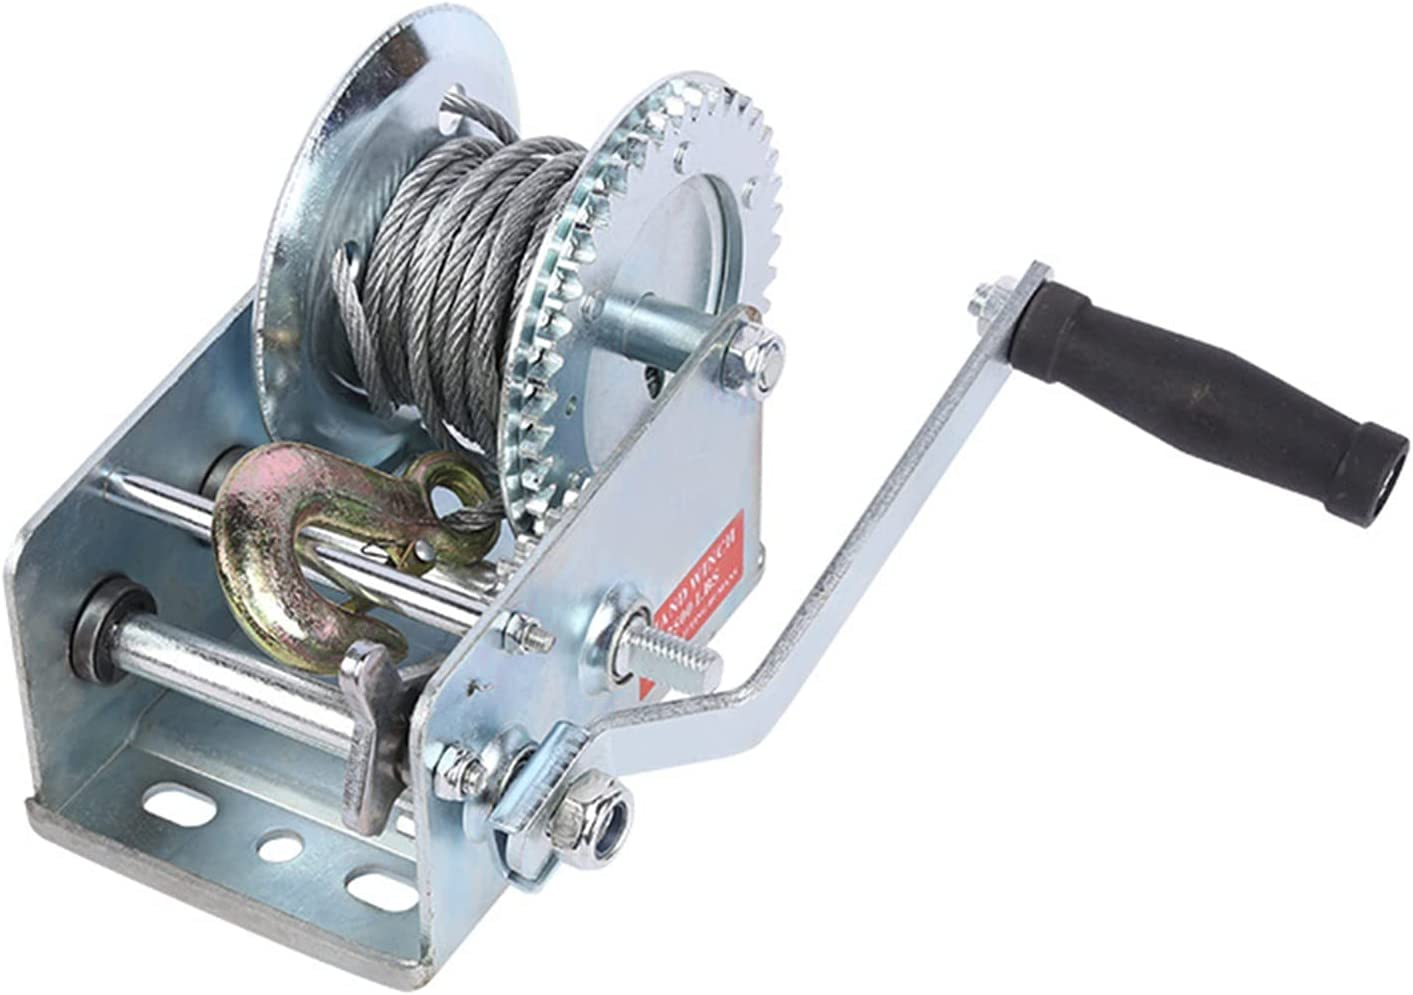 DFEO Challenge the lowest price of Japan Manual Winch Hand Crank Boa Gear New life Strap Trailer